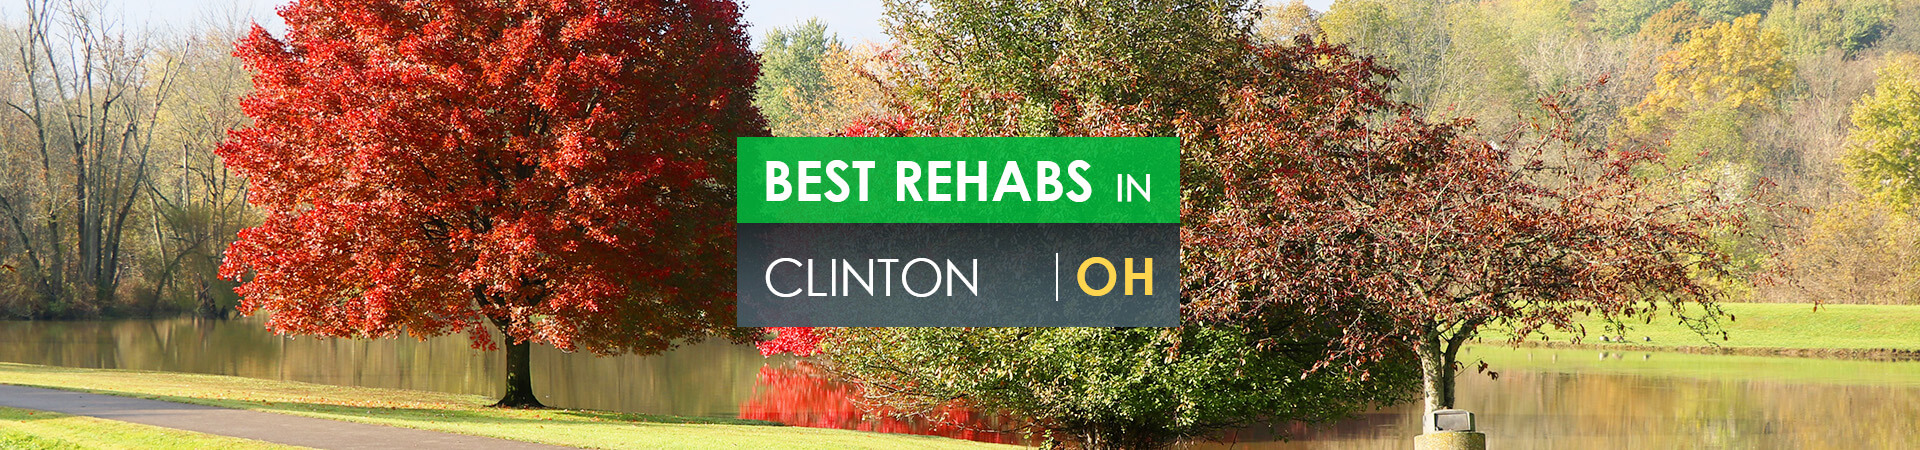 Best rehabs in Clinton, OH